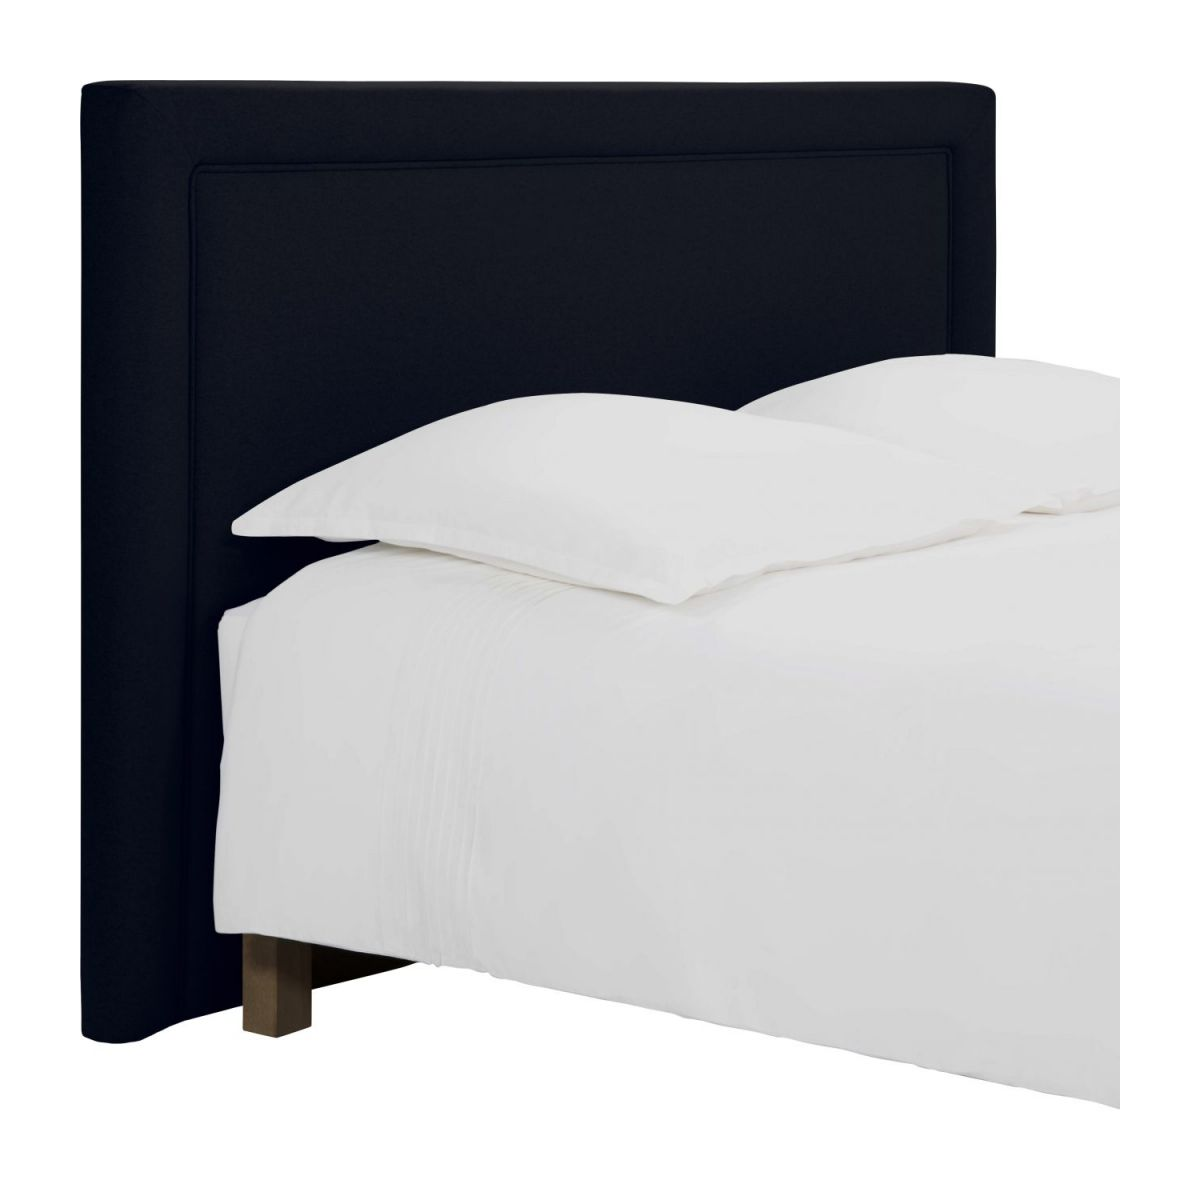 180cm Bed Montana Headboard For 180cm Box Spring In Felt Dark Blue